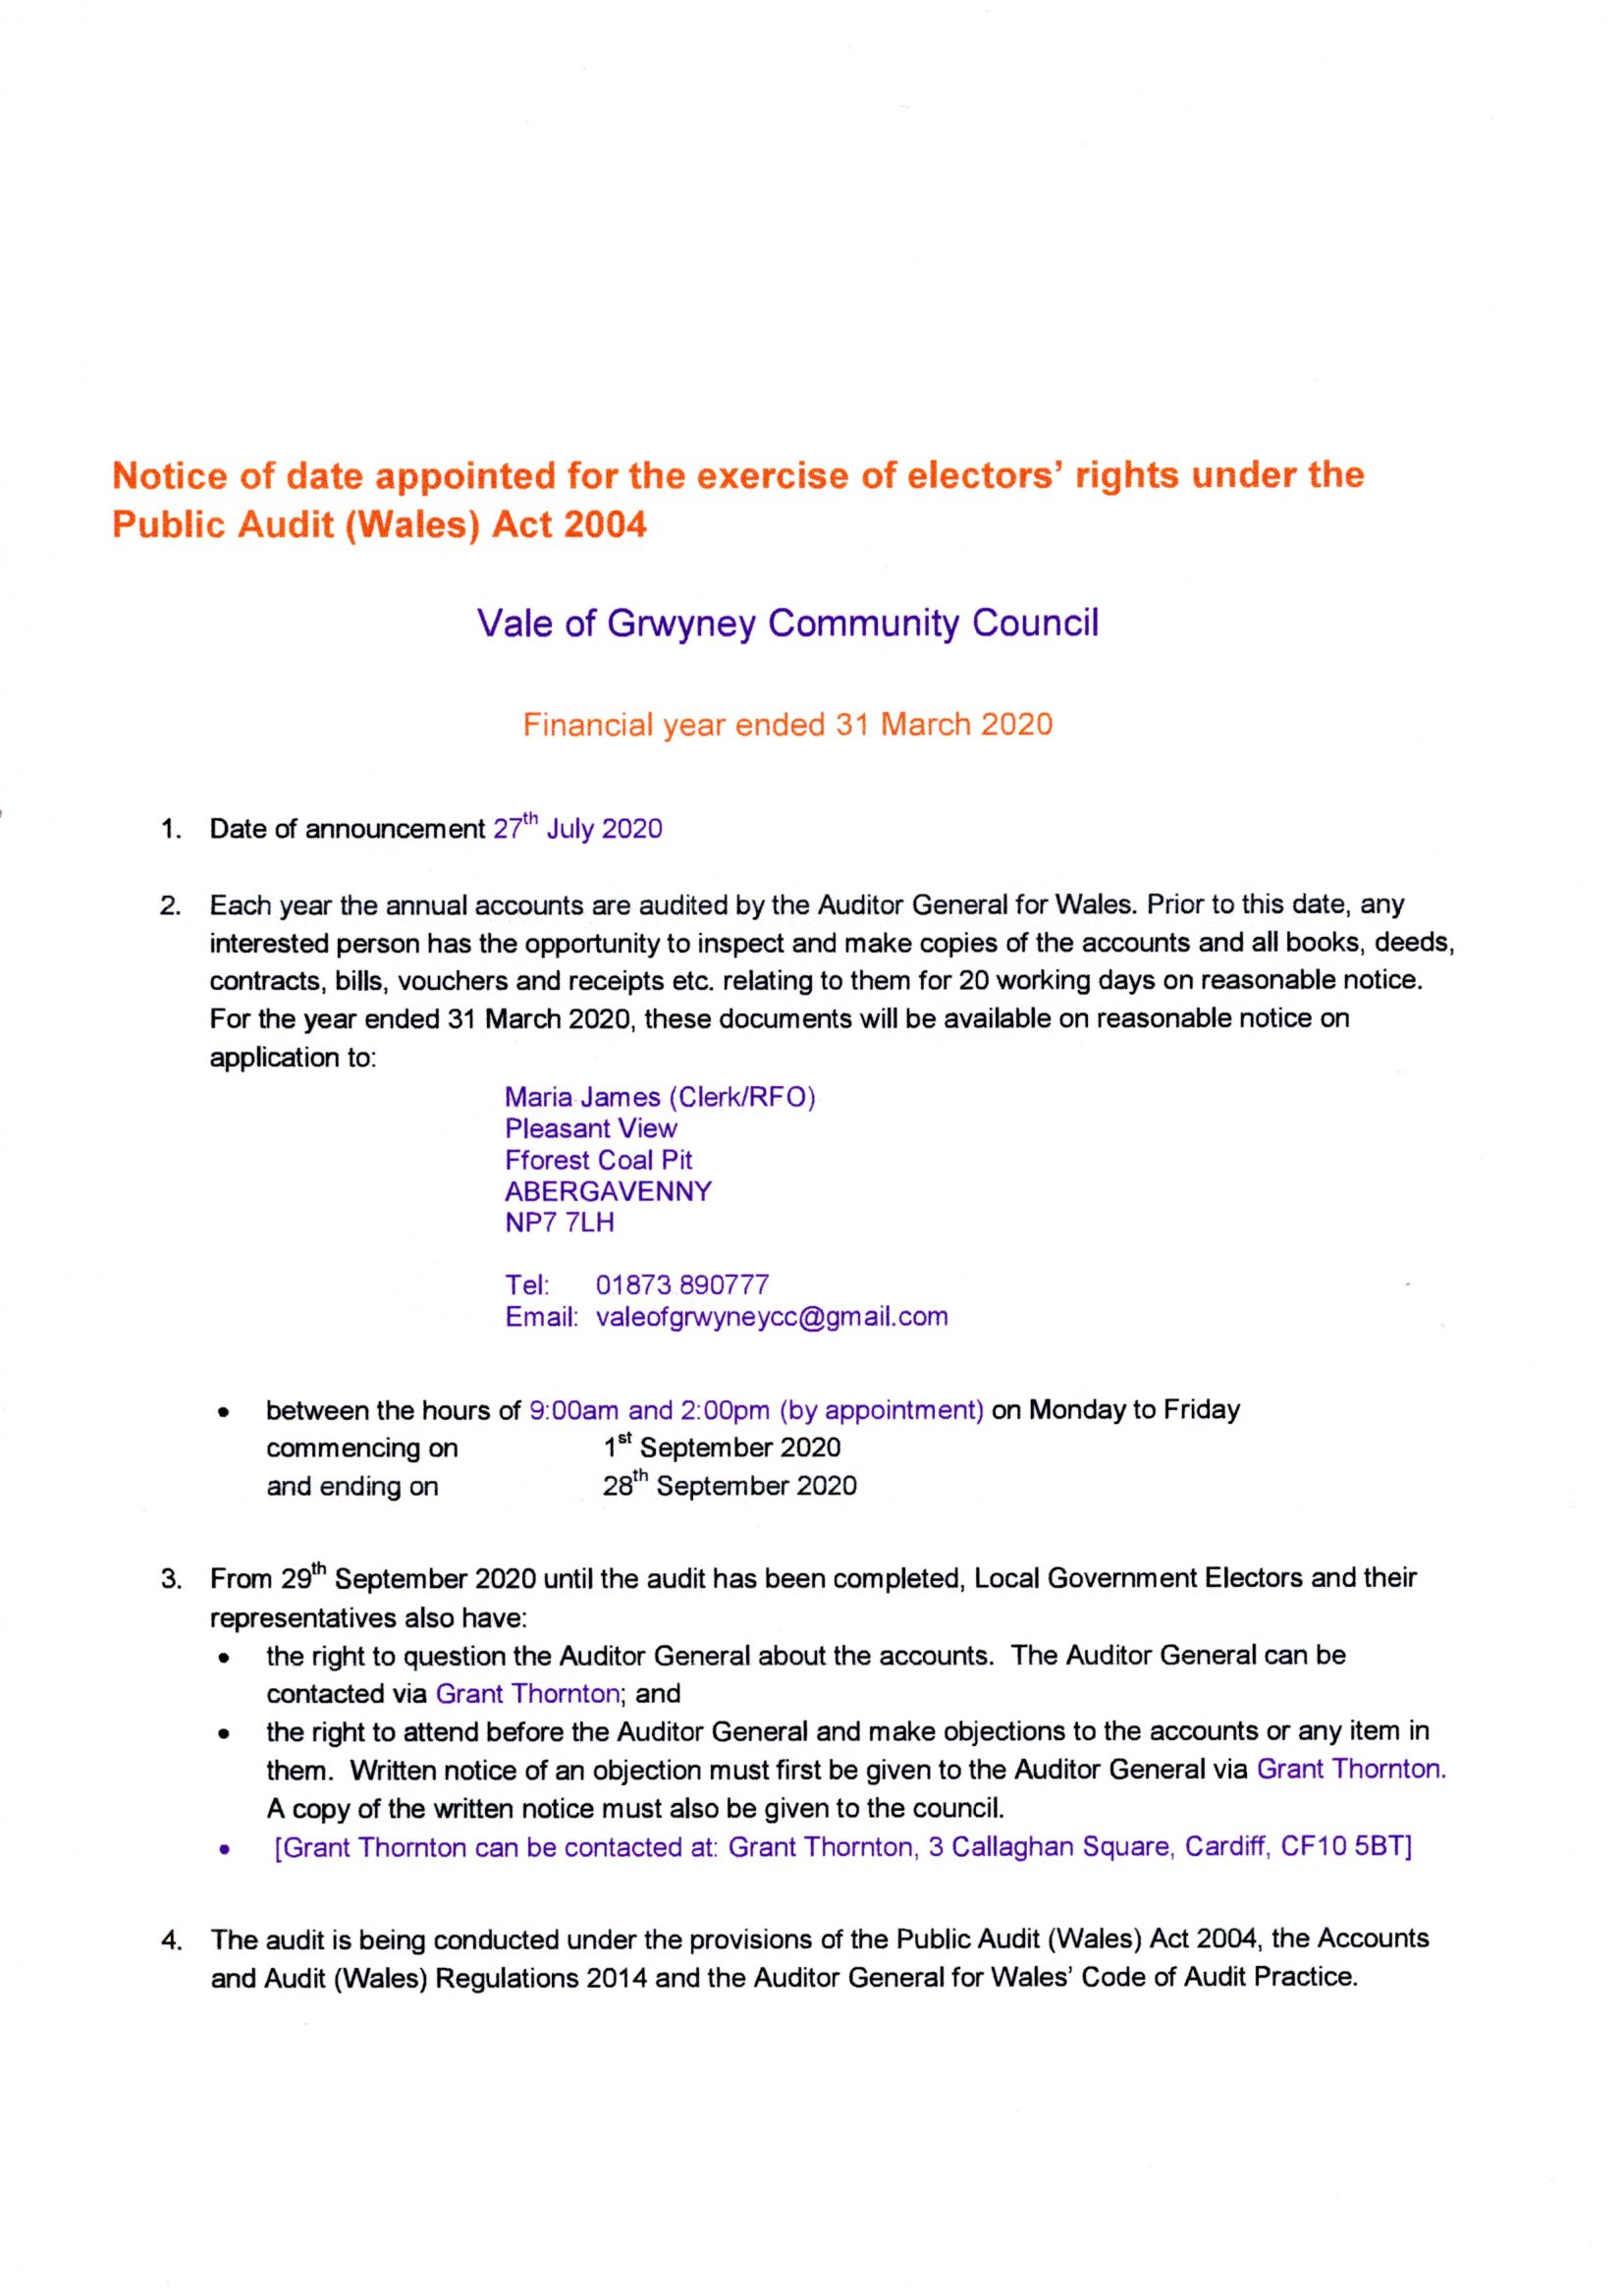 Notice of Electors' Rights under the Public Audit (Wales) Act 2004